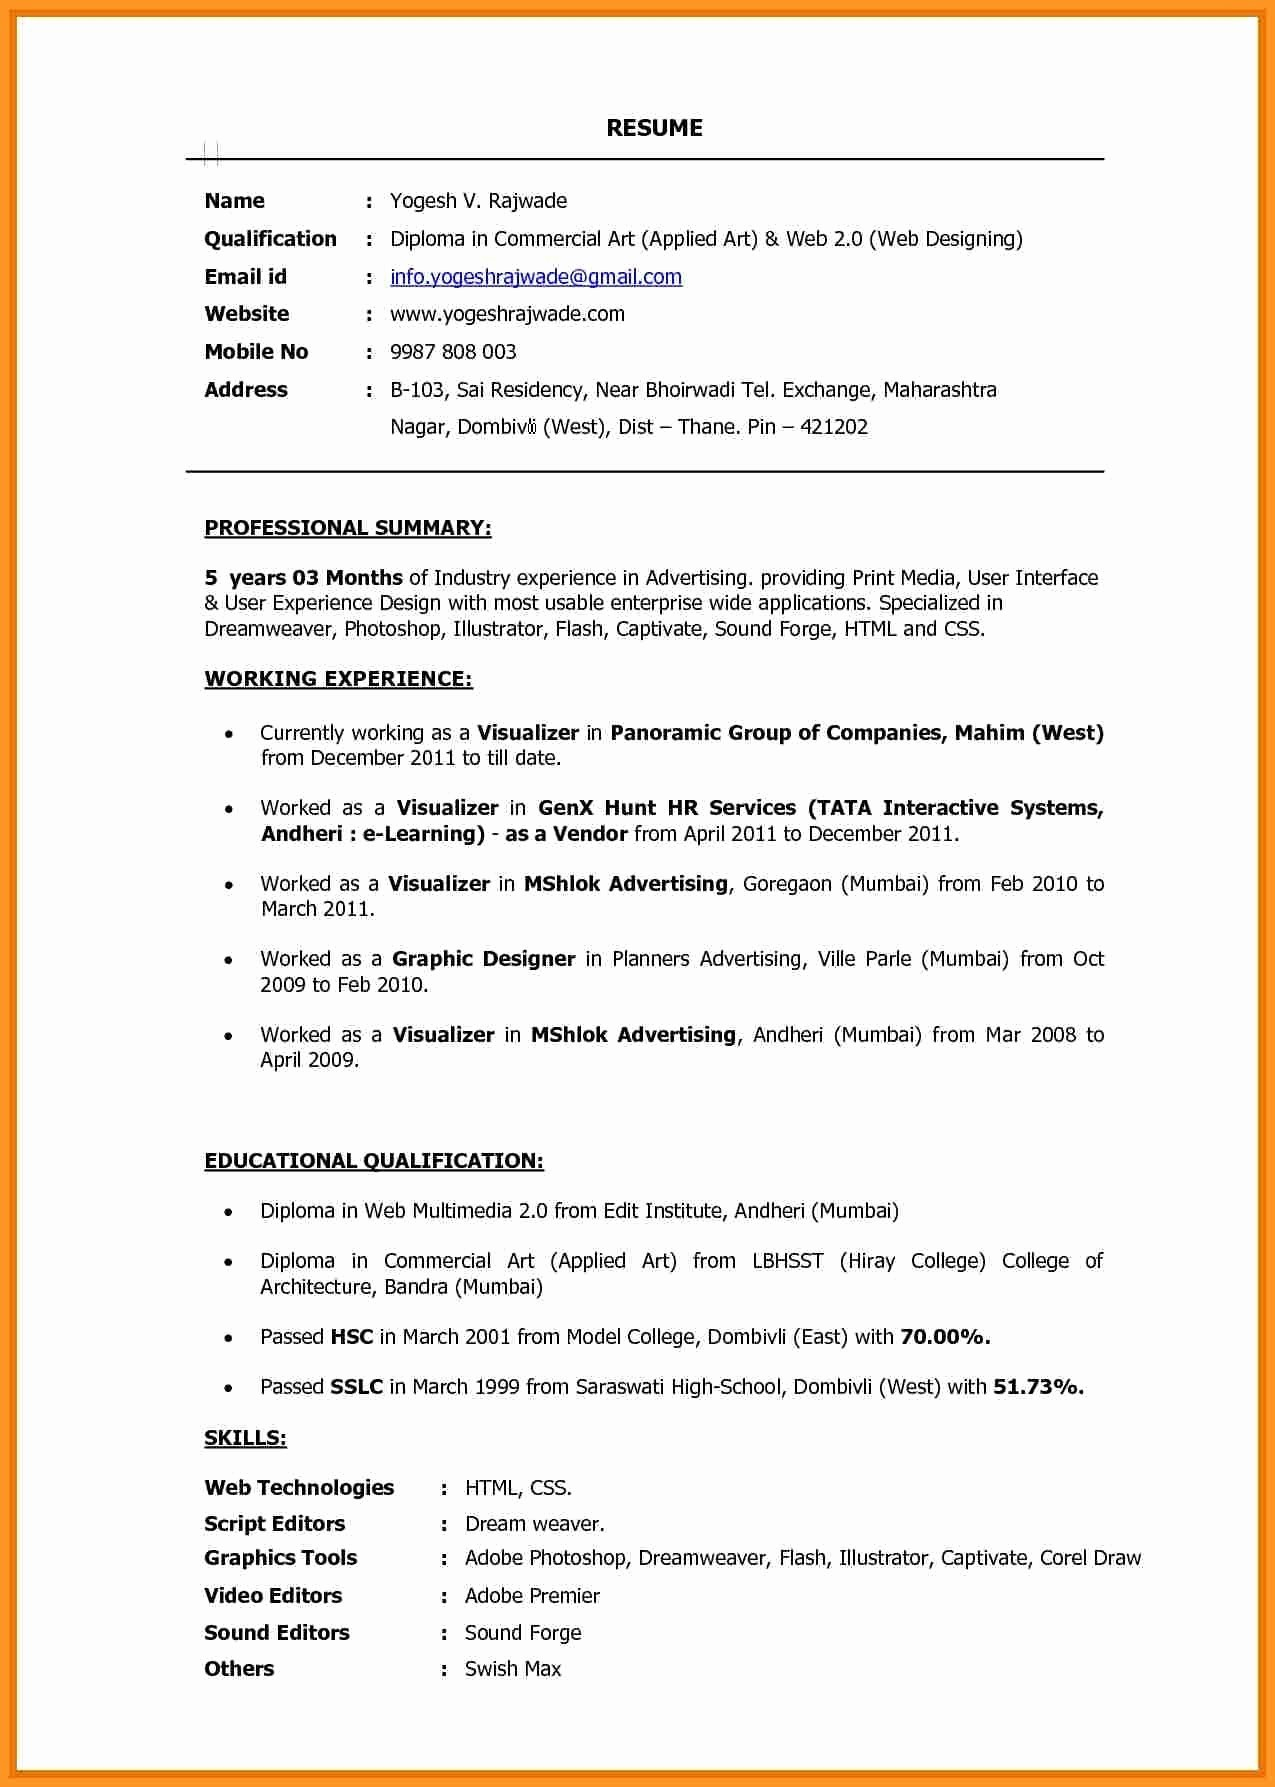 Media Resume Template - Artist Resume Template Fresh Nice Resume Templates Best Resume Fill